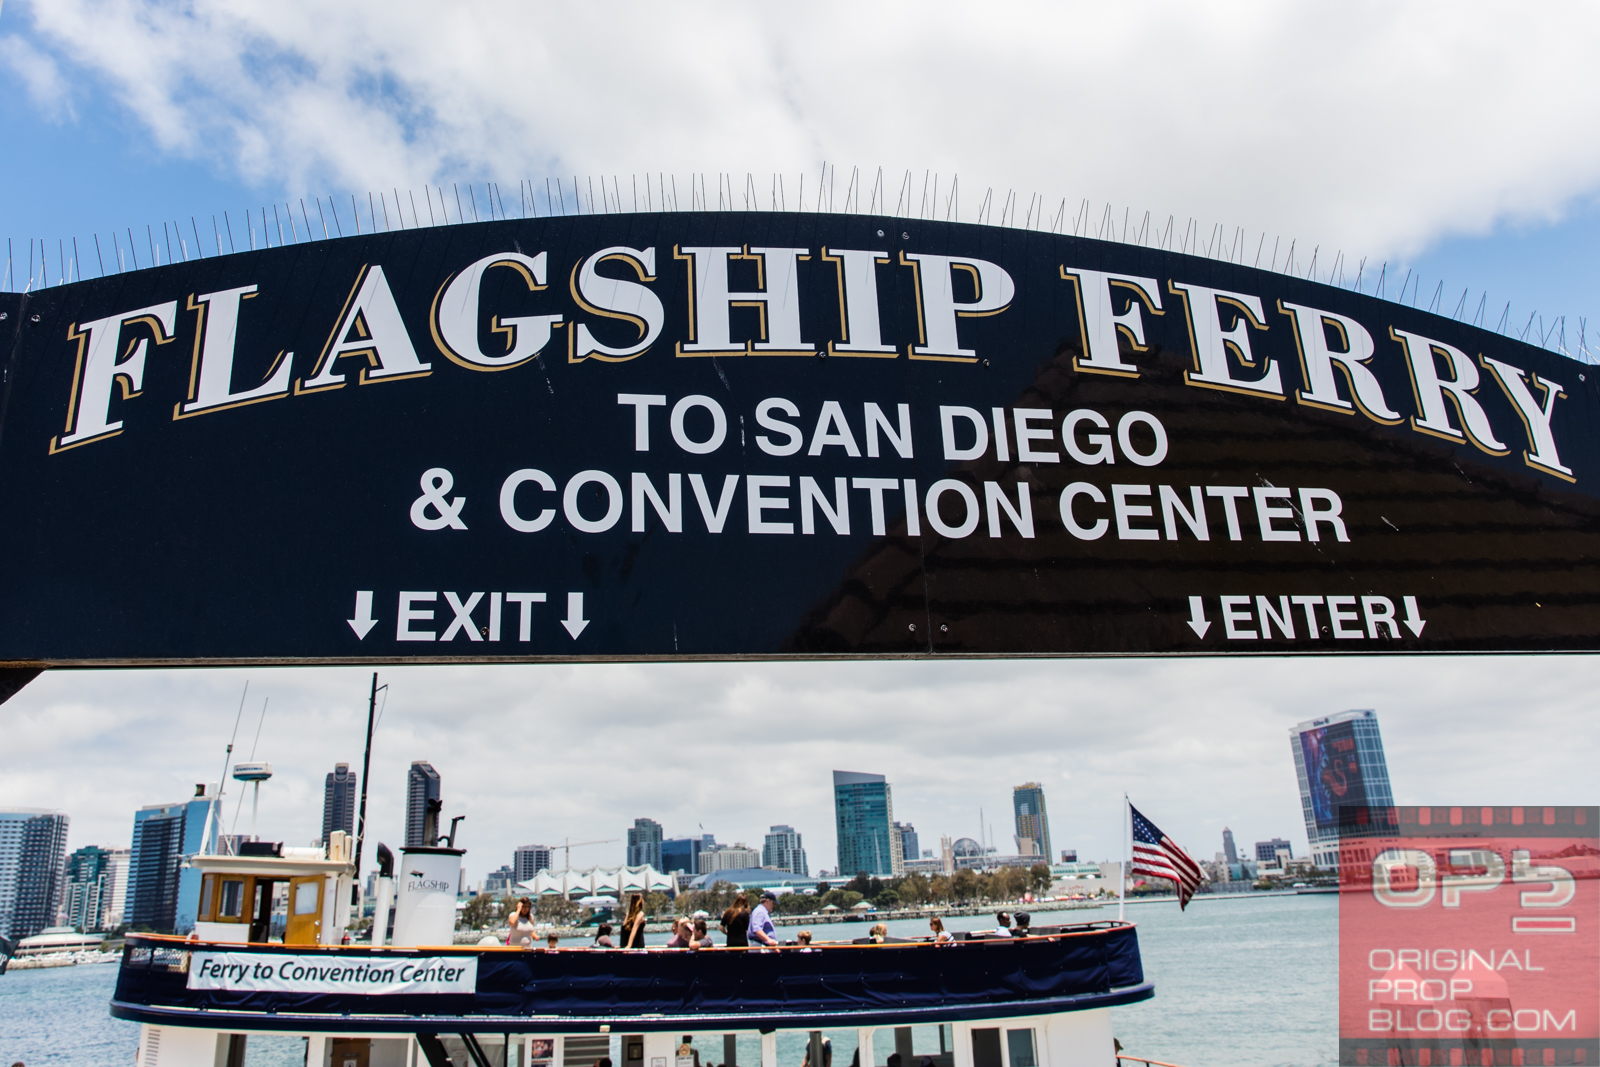 san diego comic-con 2015: travel/hotel/resort/ferry travel advice